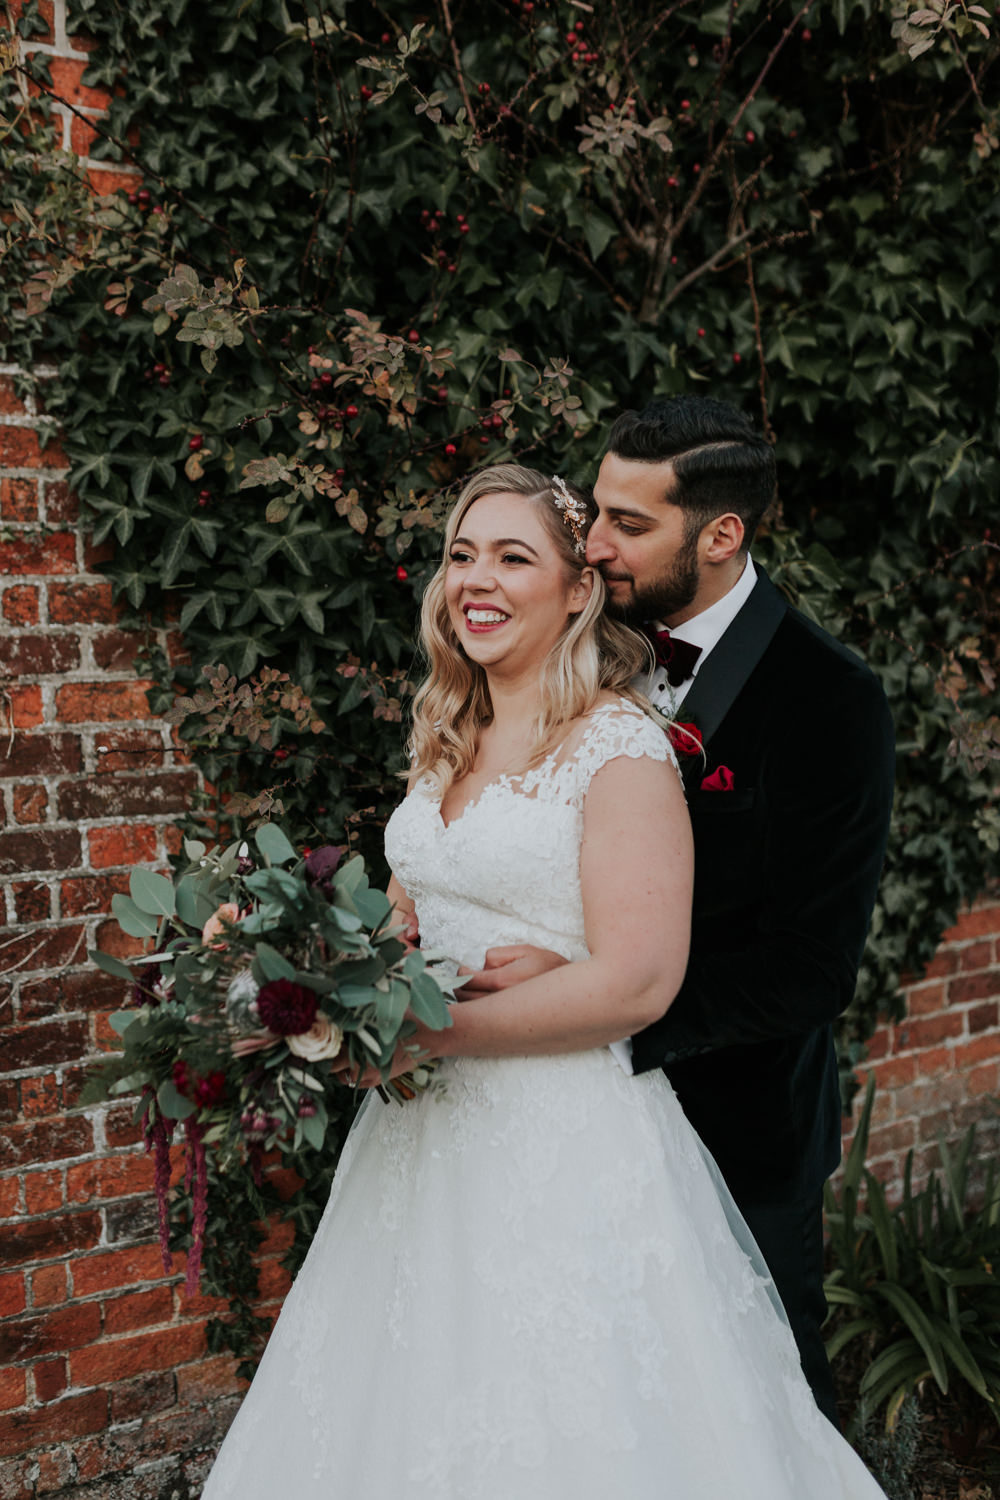 Bride Bridal Cap Sleeve Lace Overlay Dress Gown Veil Velvet Tuxedo Burgundy Bow Tie Groom Greenery Eucalyptus Bouquet Dahlia Rose Gaynes Park Wedding Kate Gray Photography